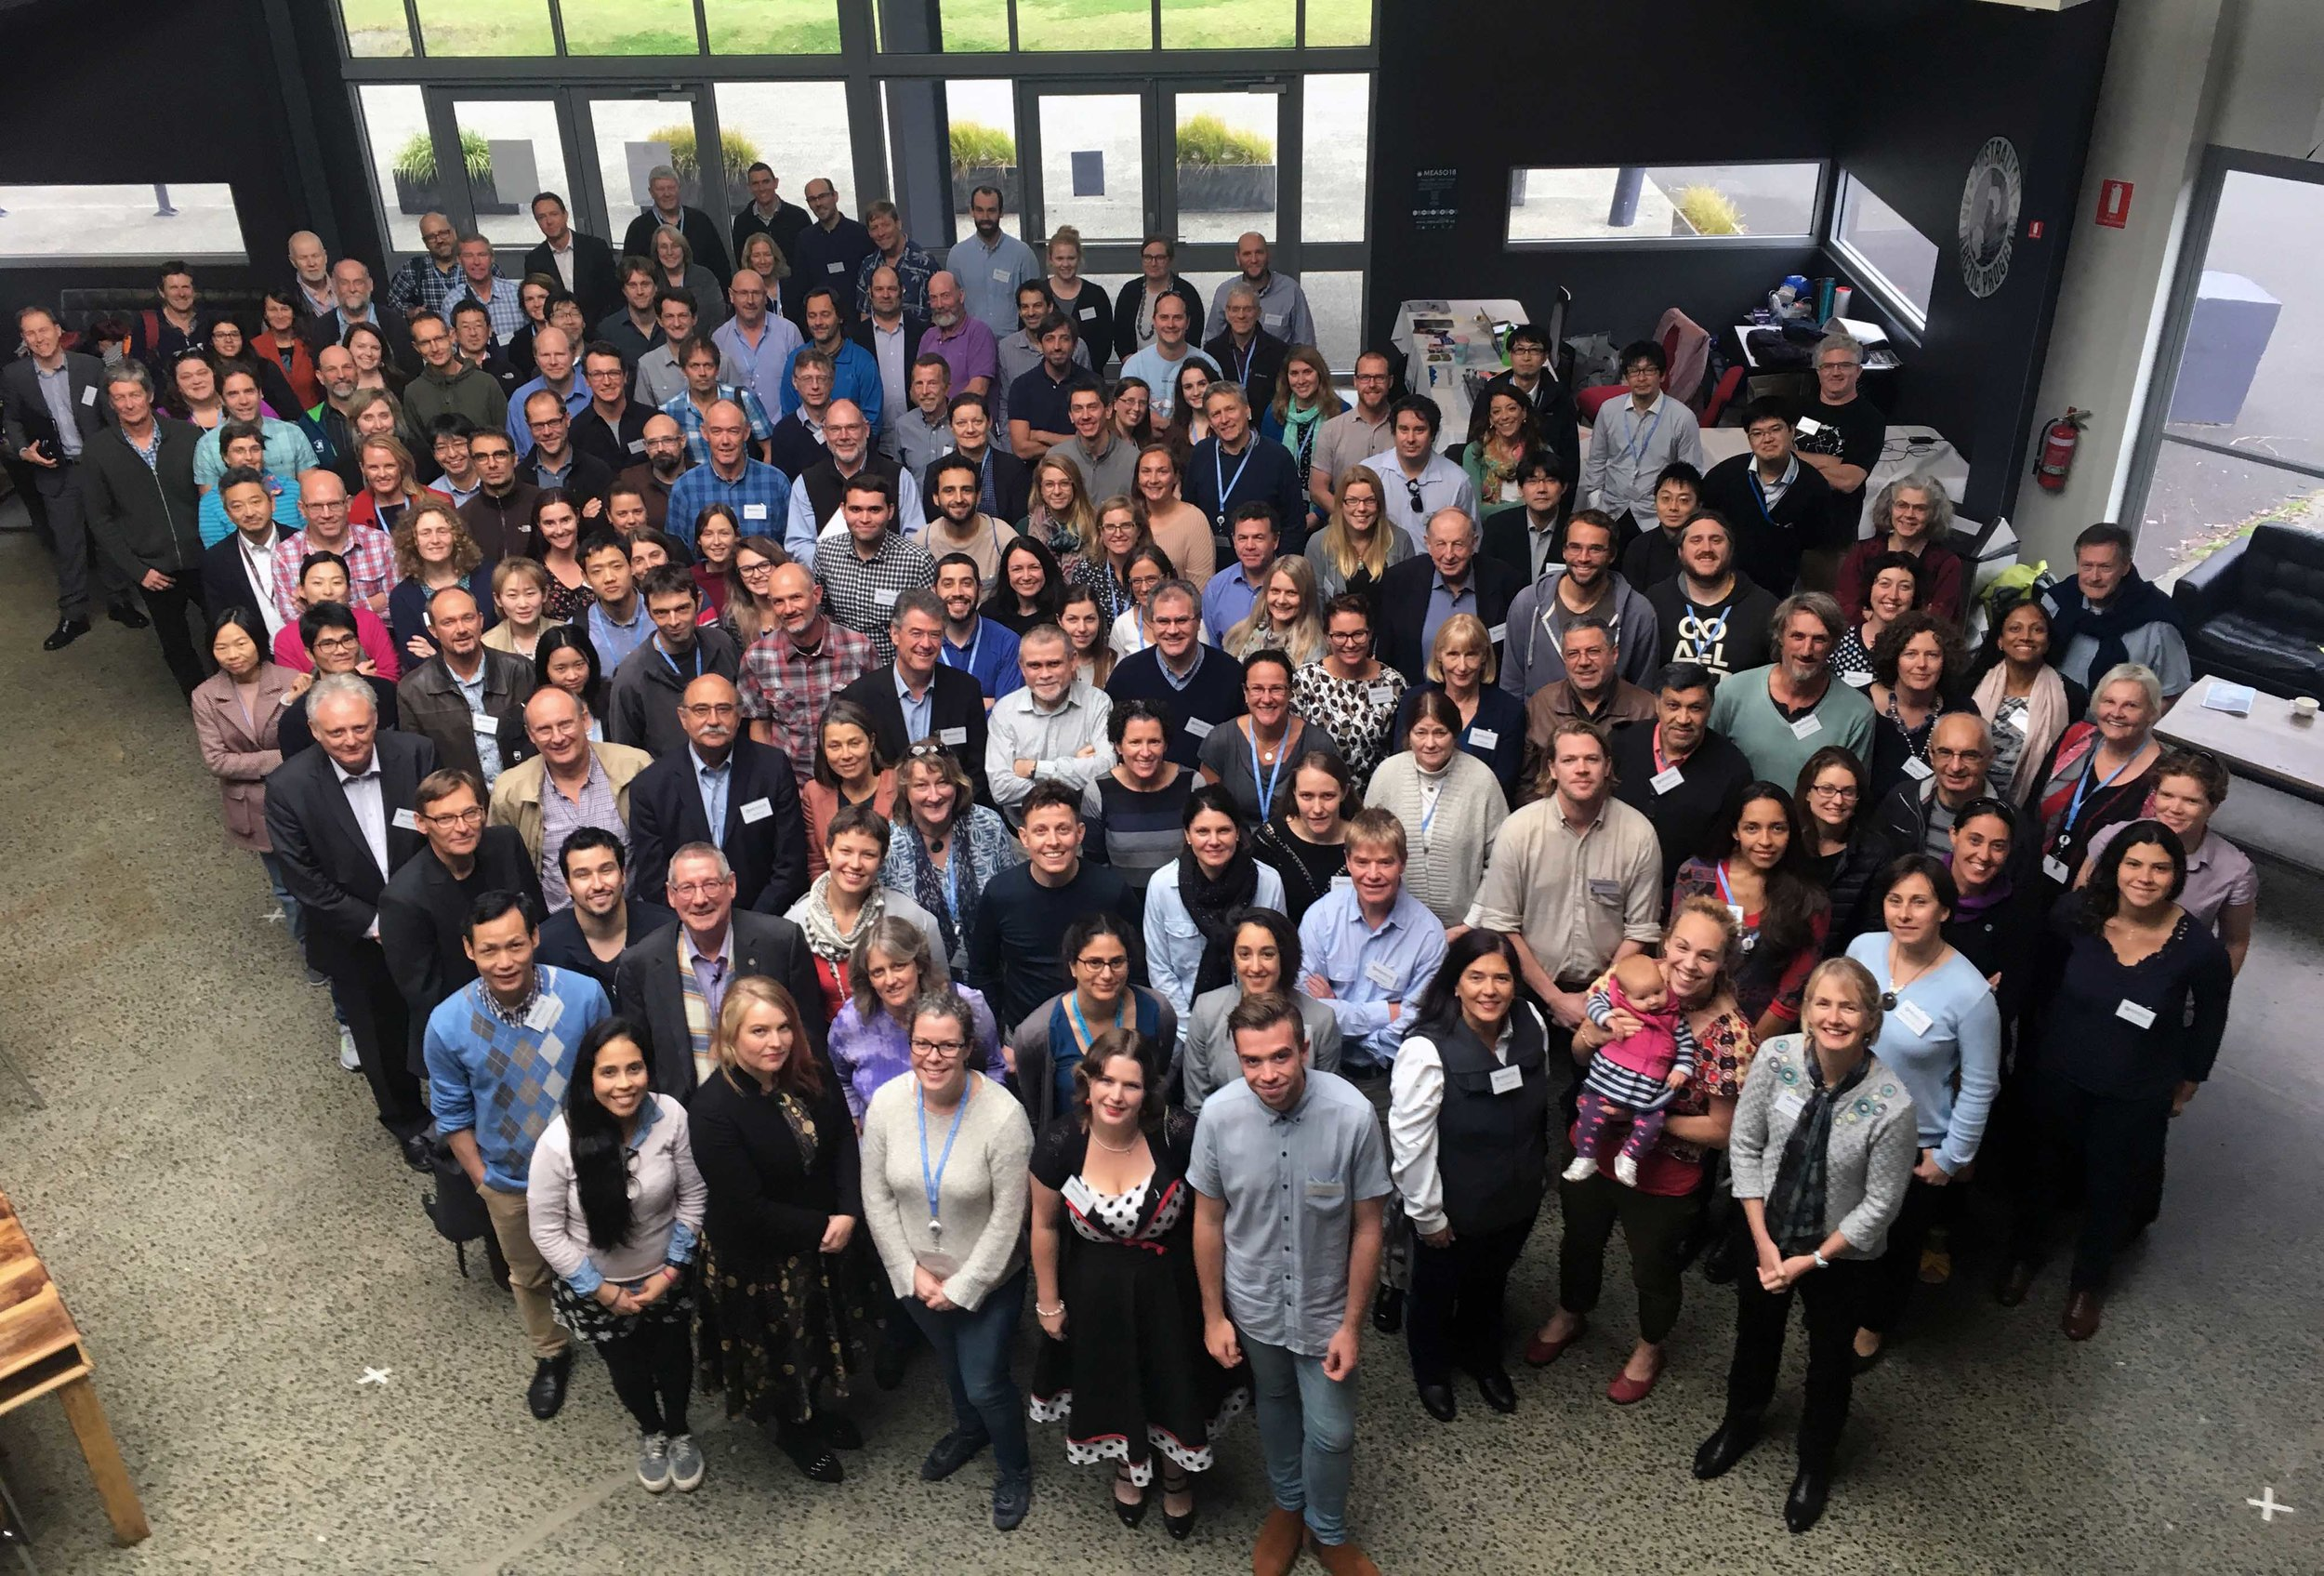 MEASO 2018GROUP PHOTO - Click to Download